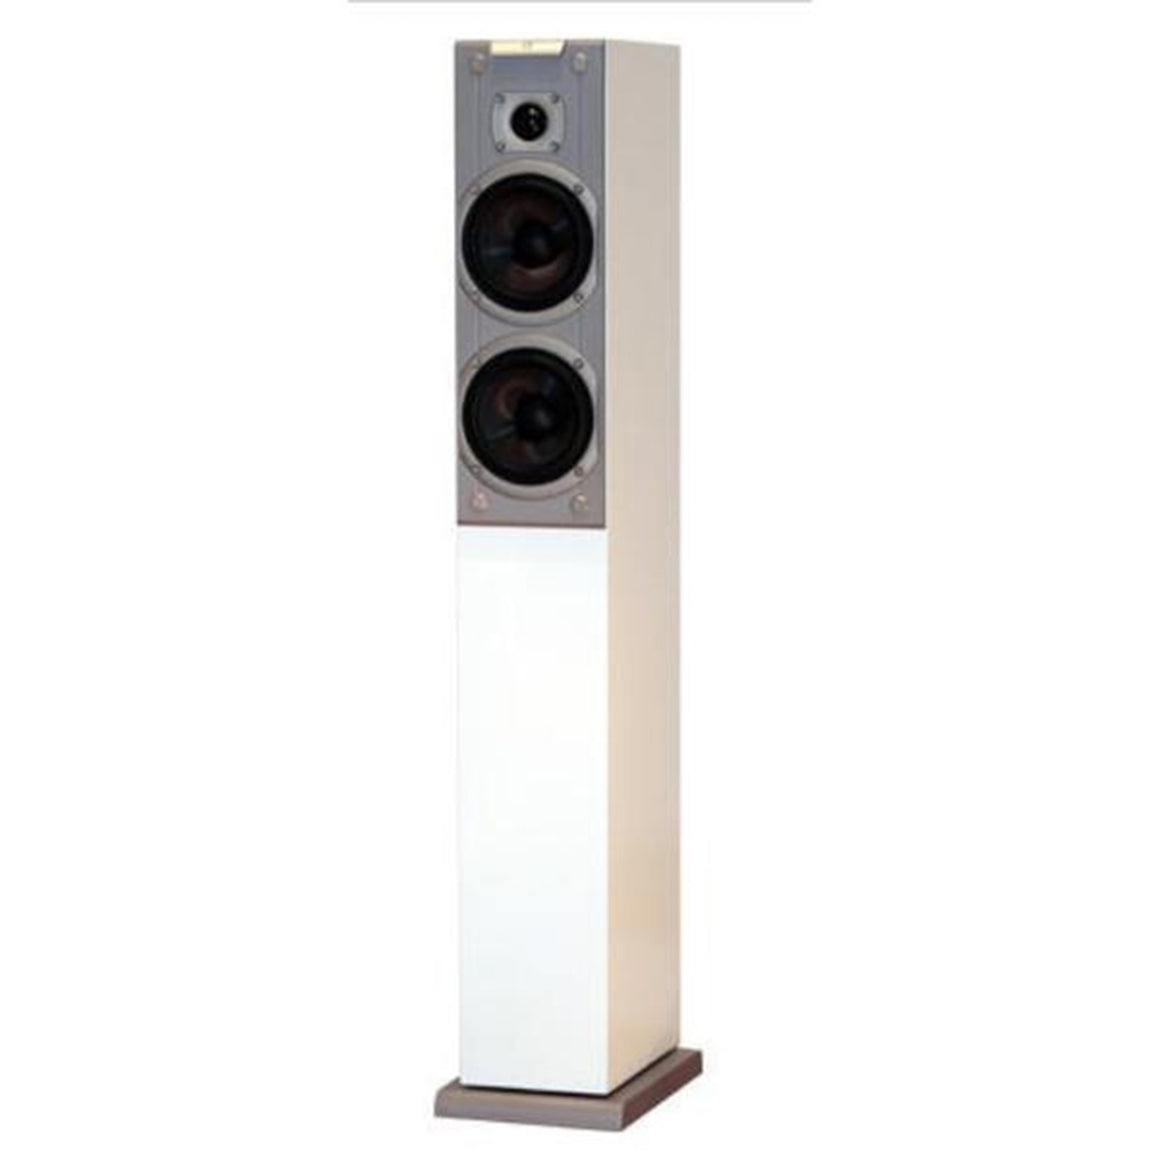 Audiovector Ki 3 Signature Floor Standing Speakers at Melbourne Hi Fi, Australia